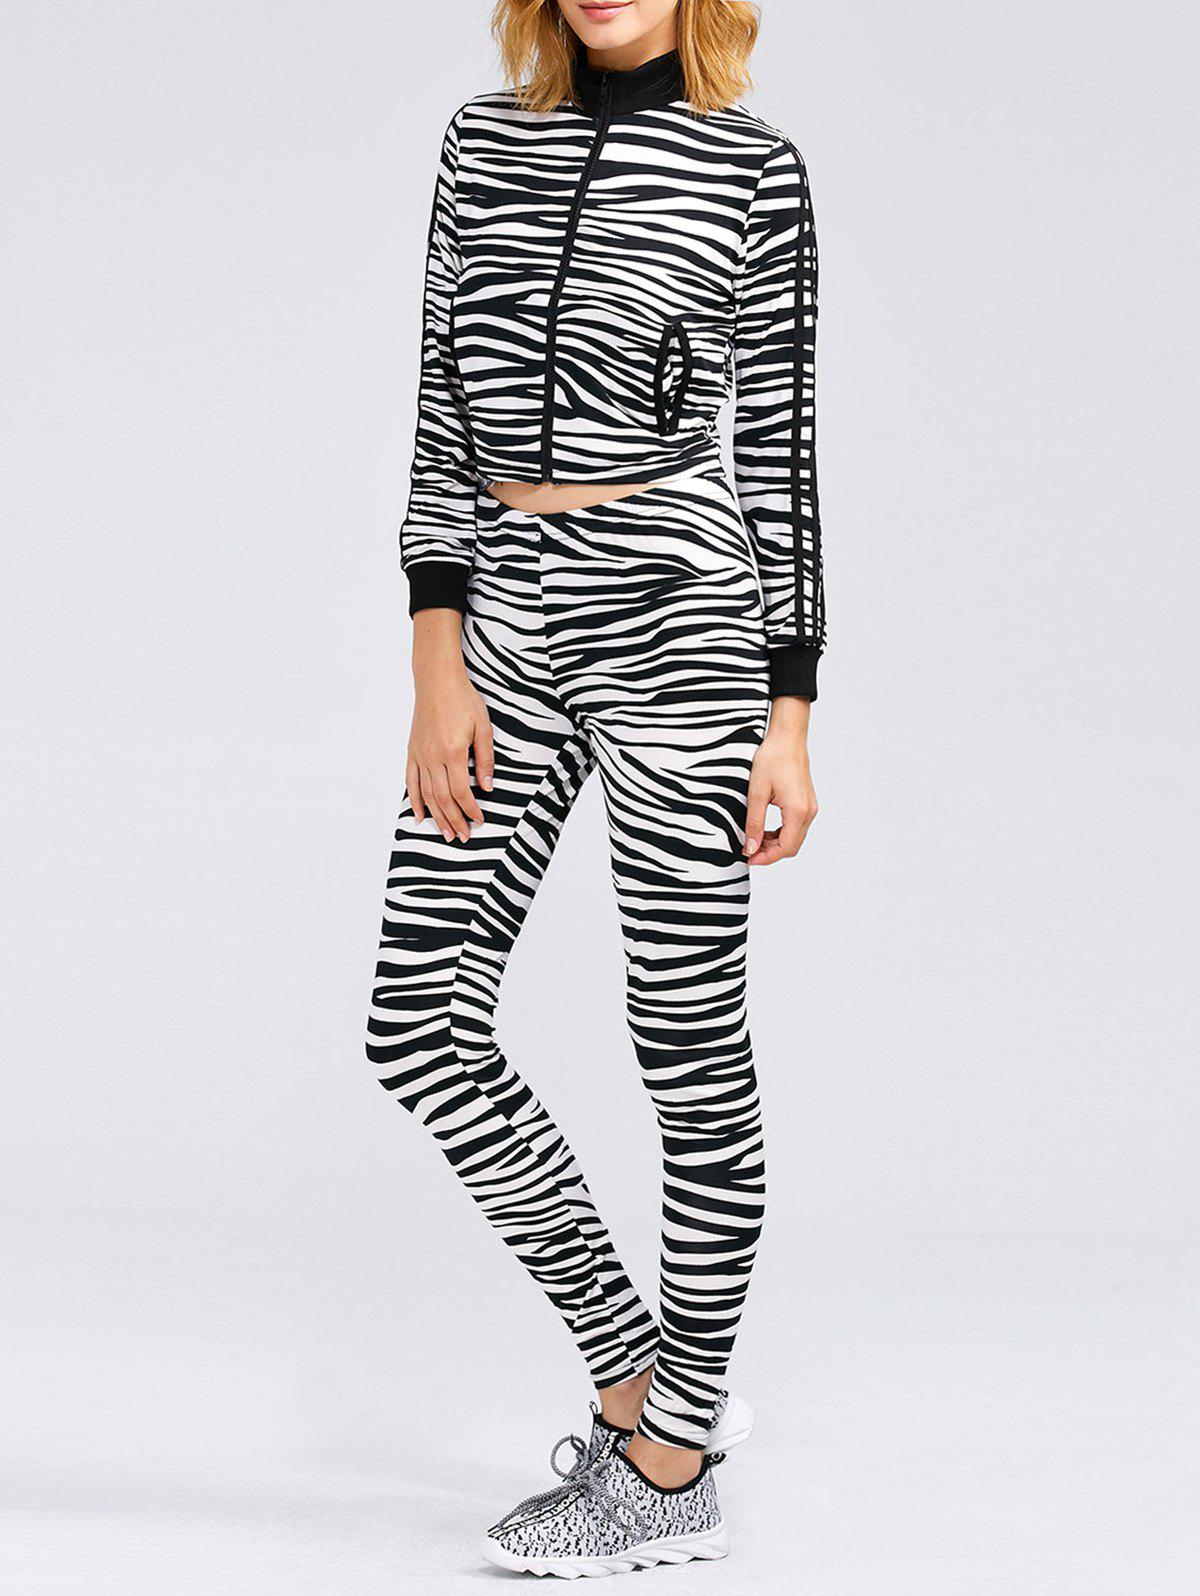 Zebra Striped Crop Running Jacket and Skinny Pants - ZEBRA STRIPES XL